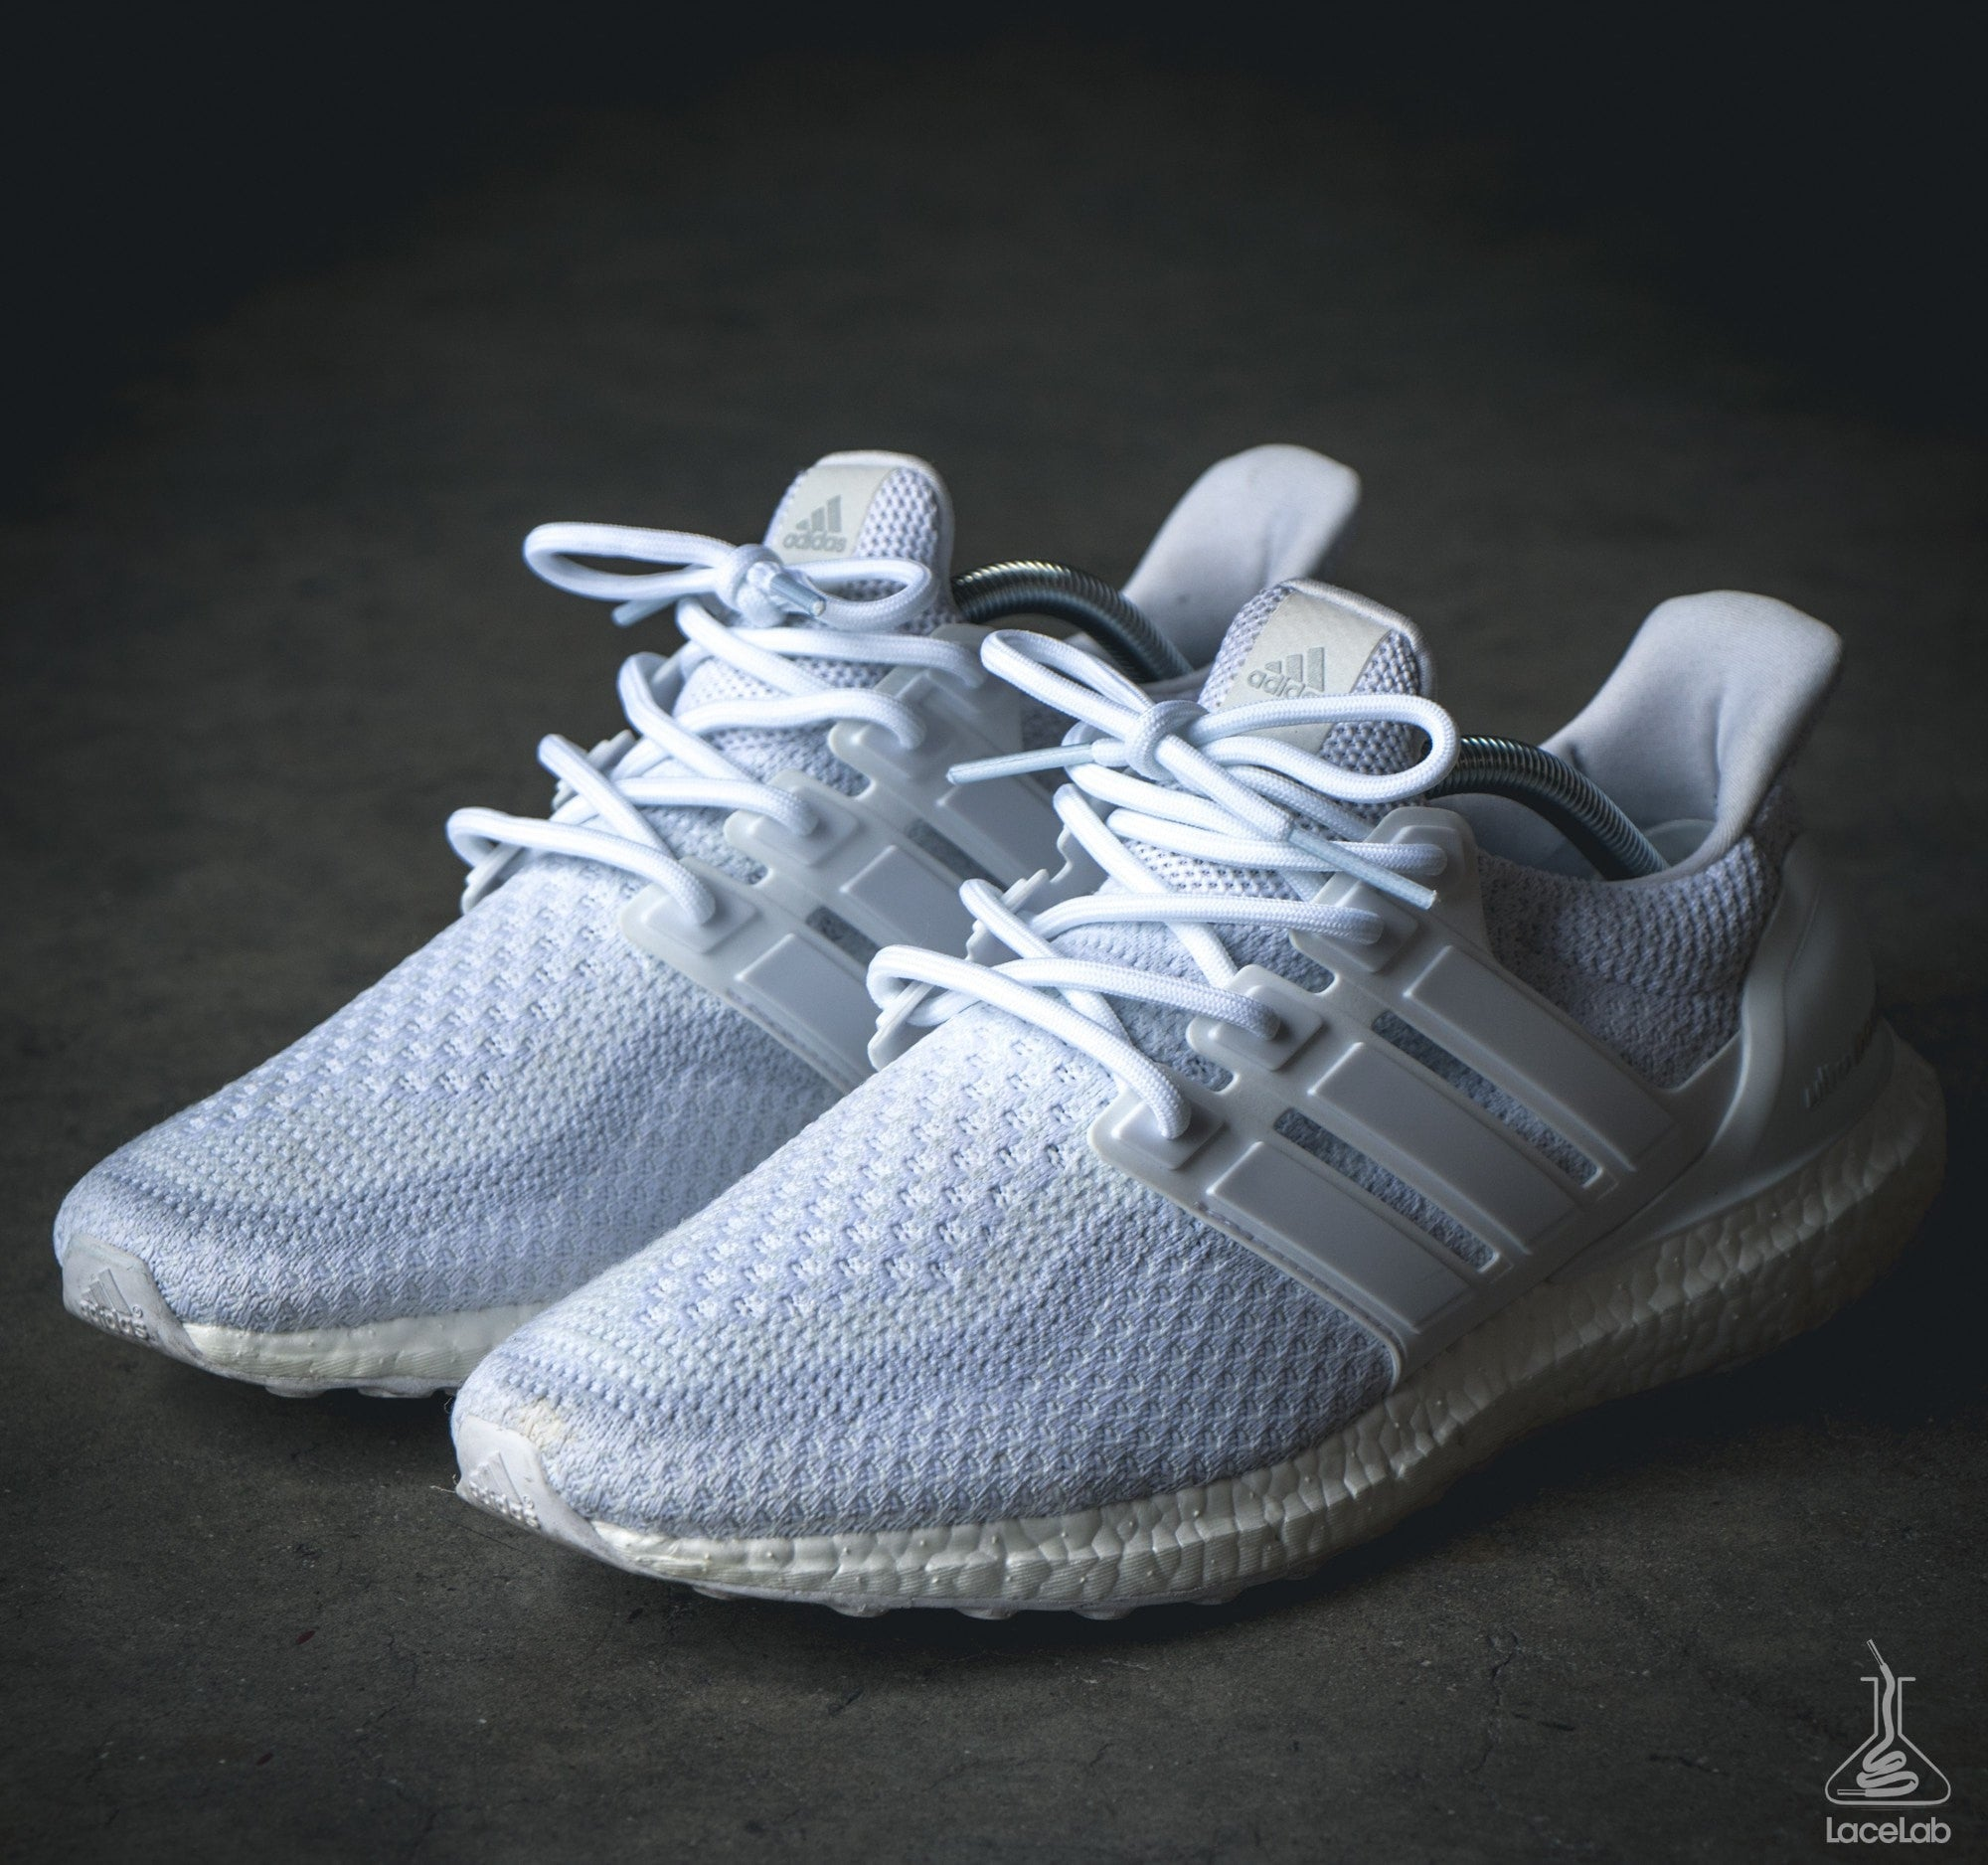 White Rope Laces | Lace Lab NMD Laces